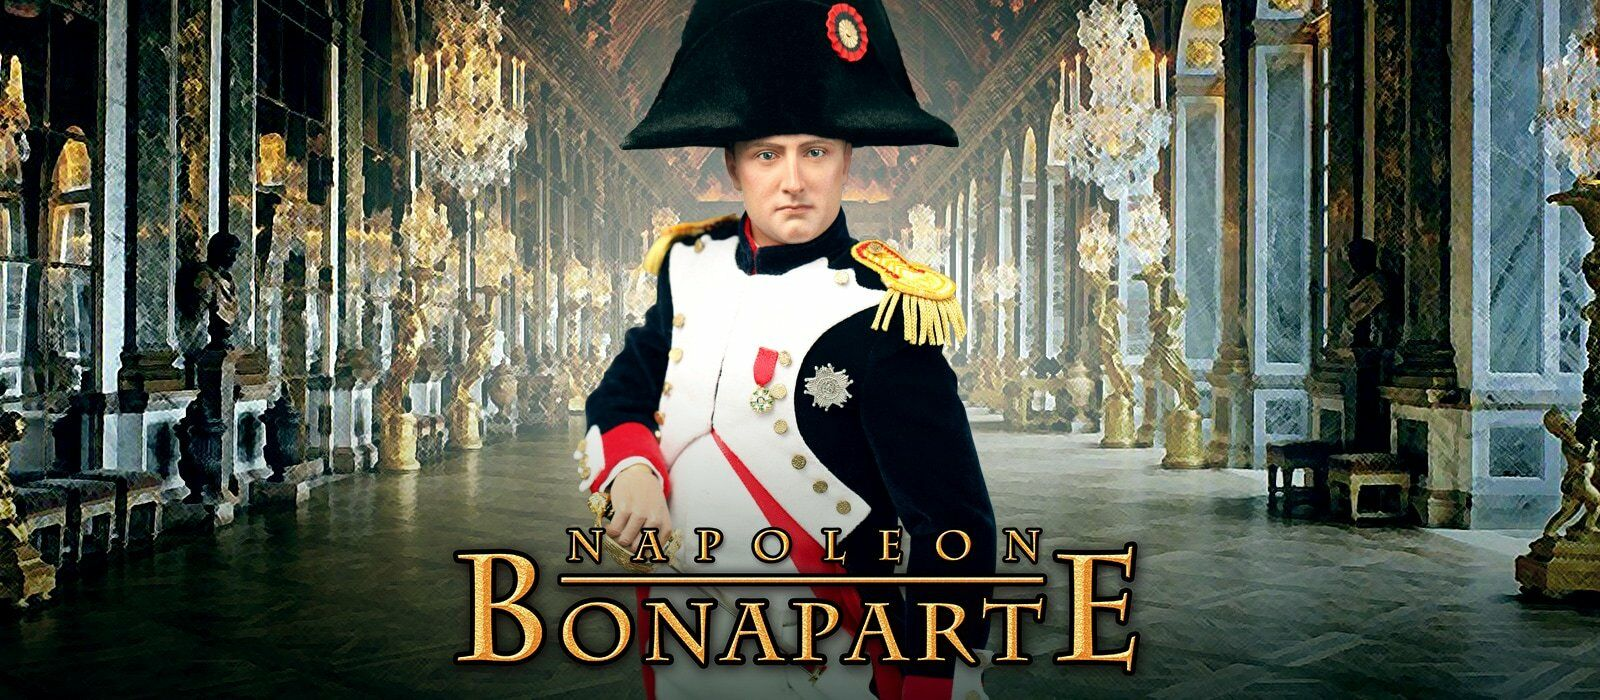 1 6 DiD Actionfigur Emperor of Die französische NAPOLEON BONAPARTE Normal Ver